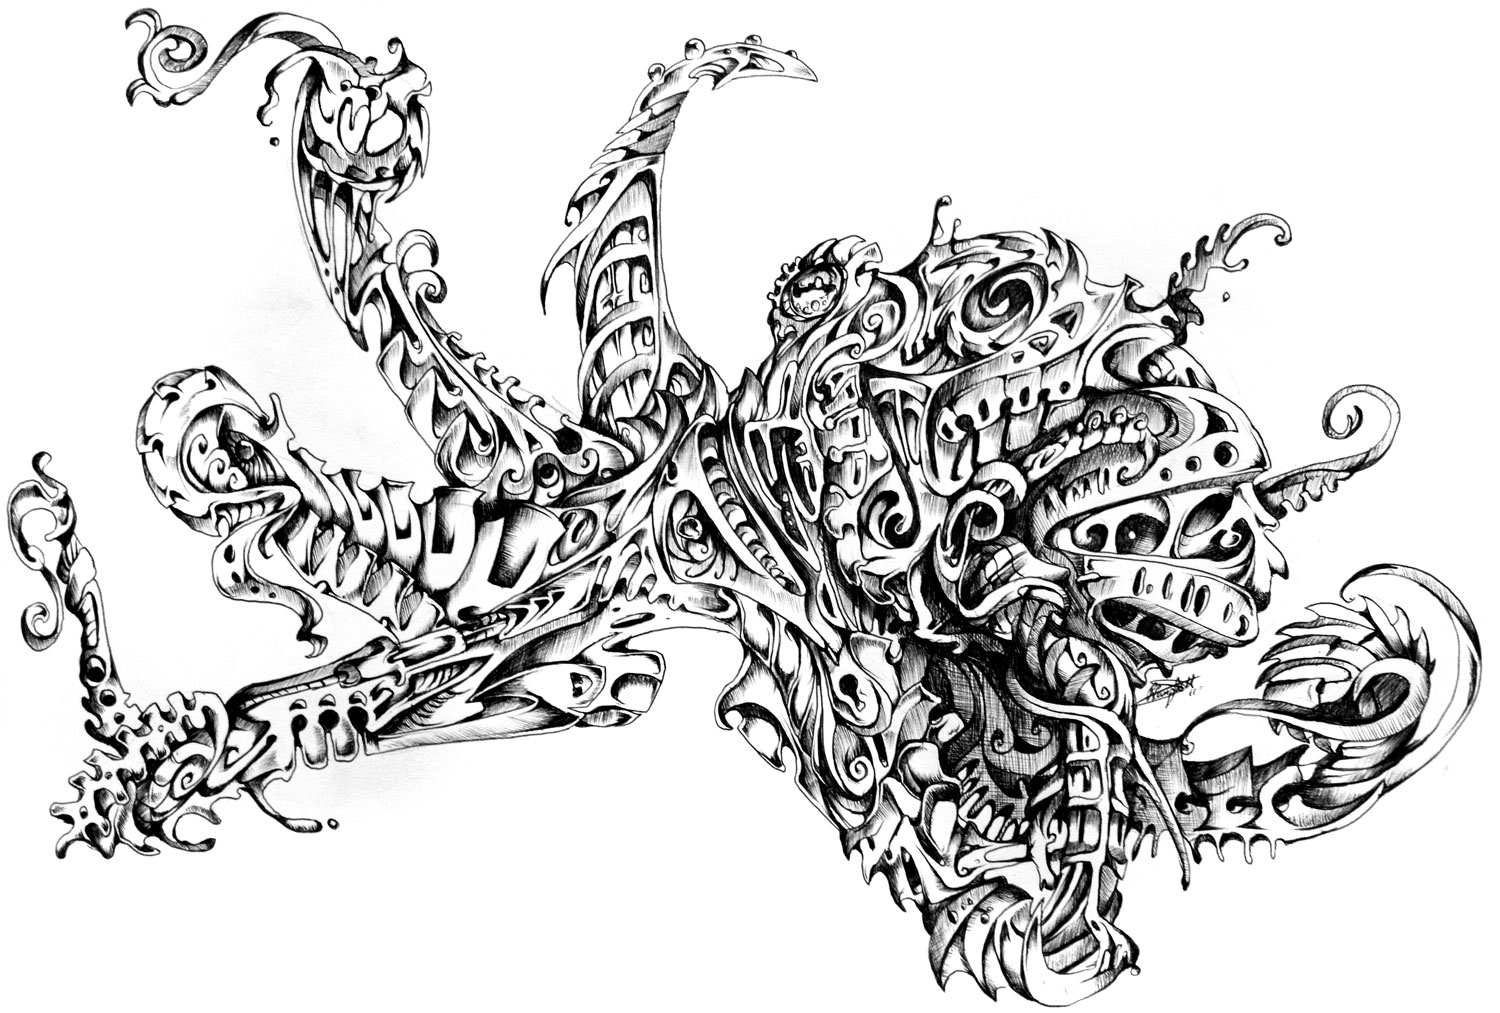 Stunning Black And White Illustrations By Rene Campbell